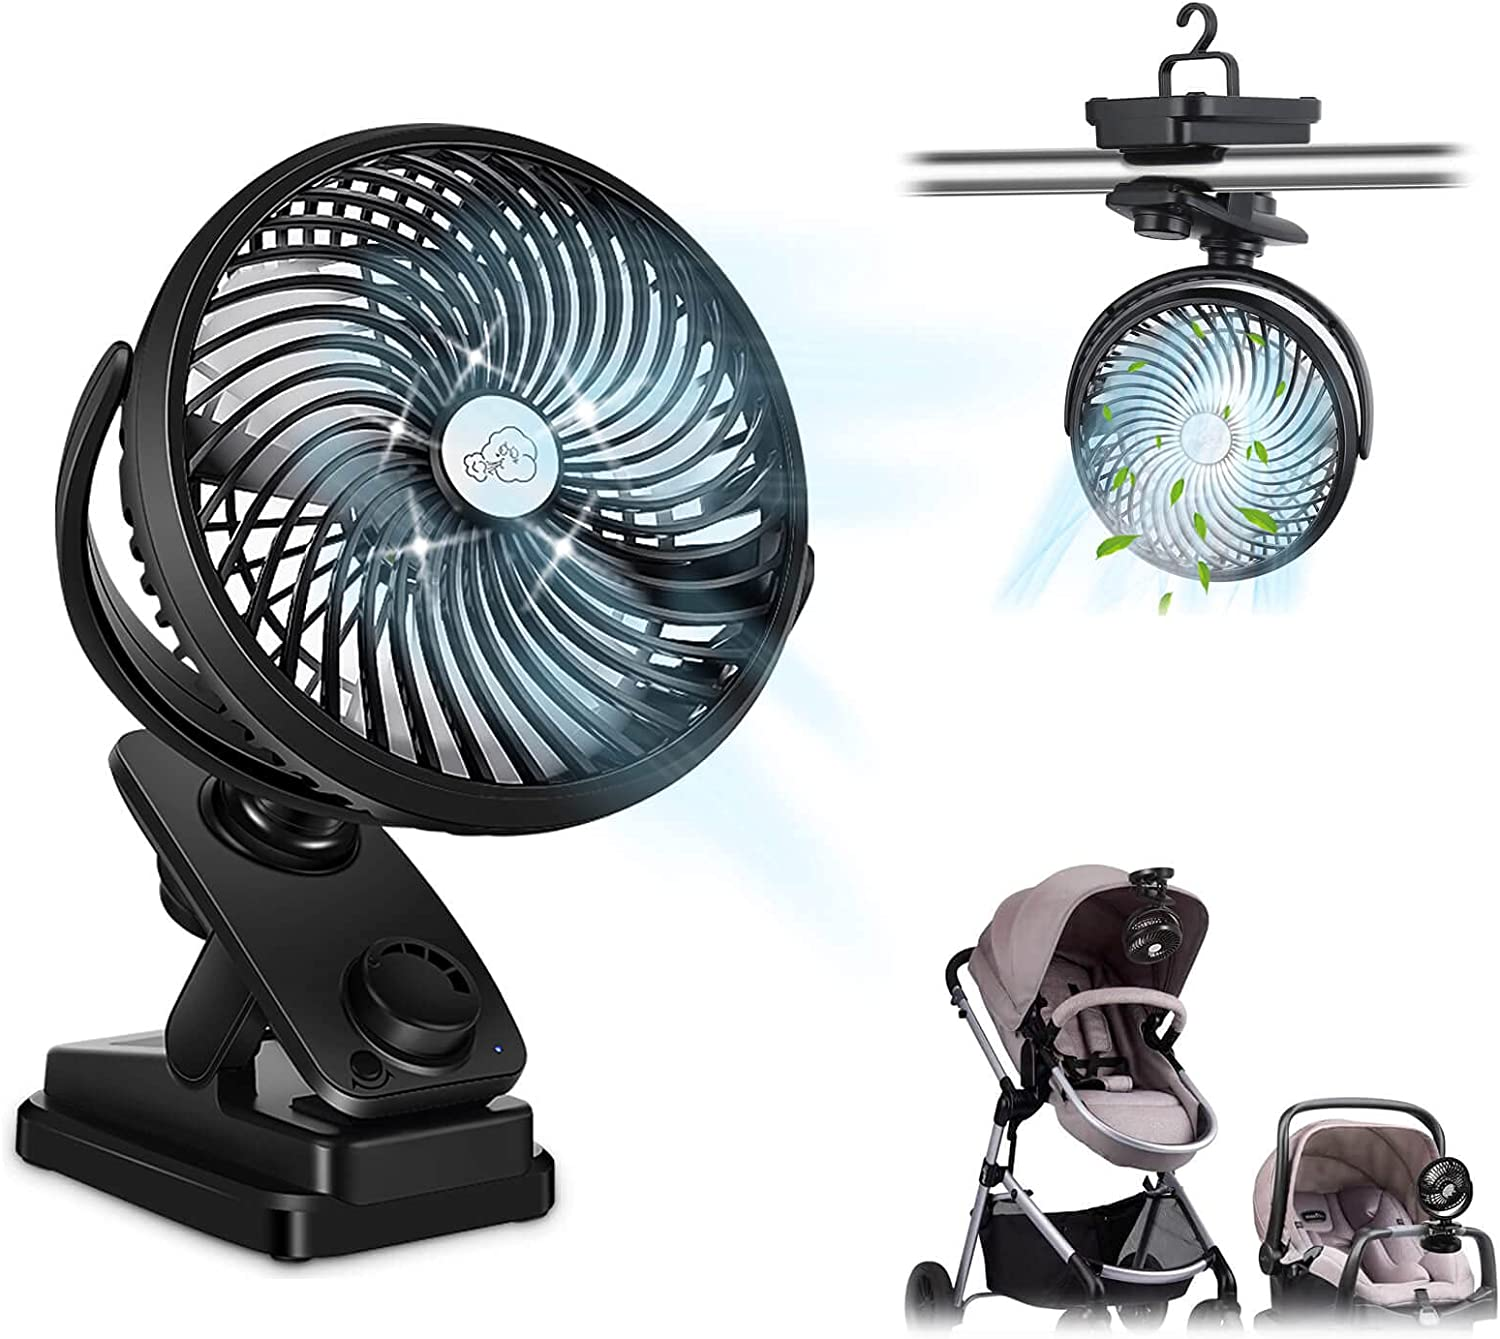 Baby Fan for Stroller 10000mAh Operated Genuine Free Shipping Now free shipping 7 Battery Rechargeable